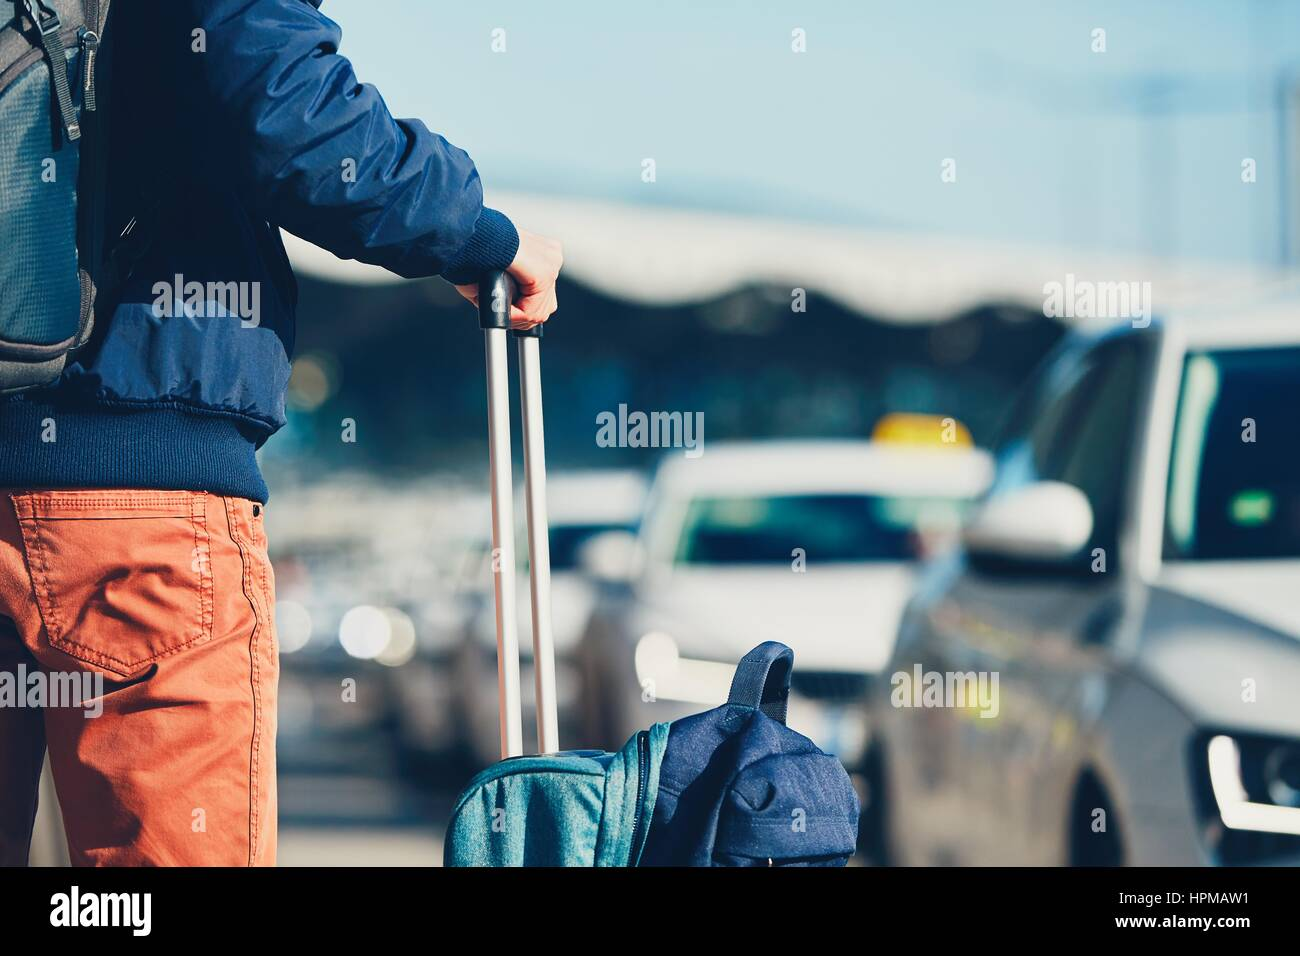 Airport taxi. Passenger is waiting for taxi car. - Stock Image